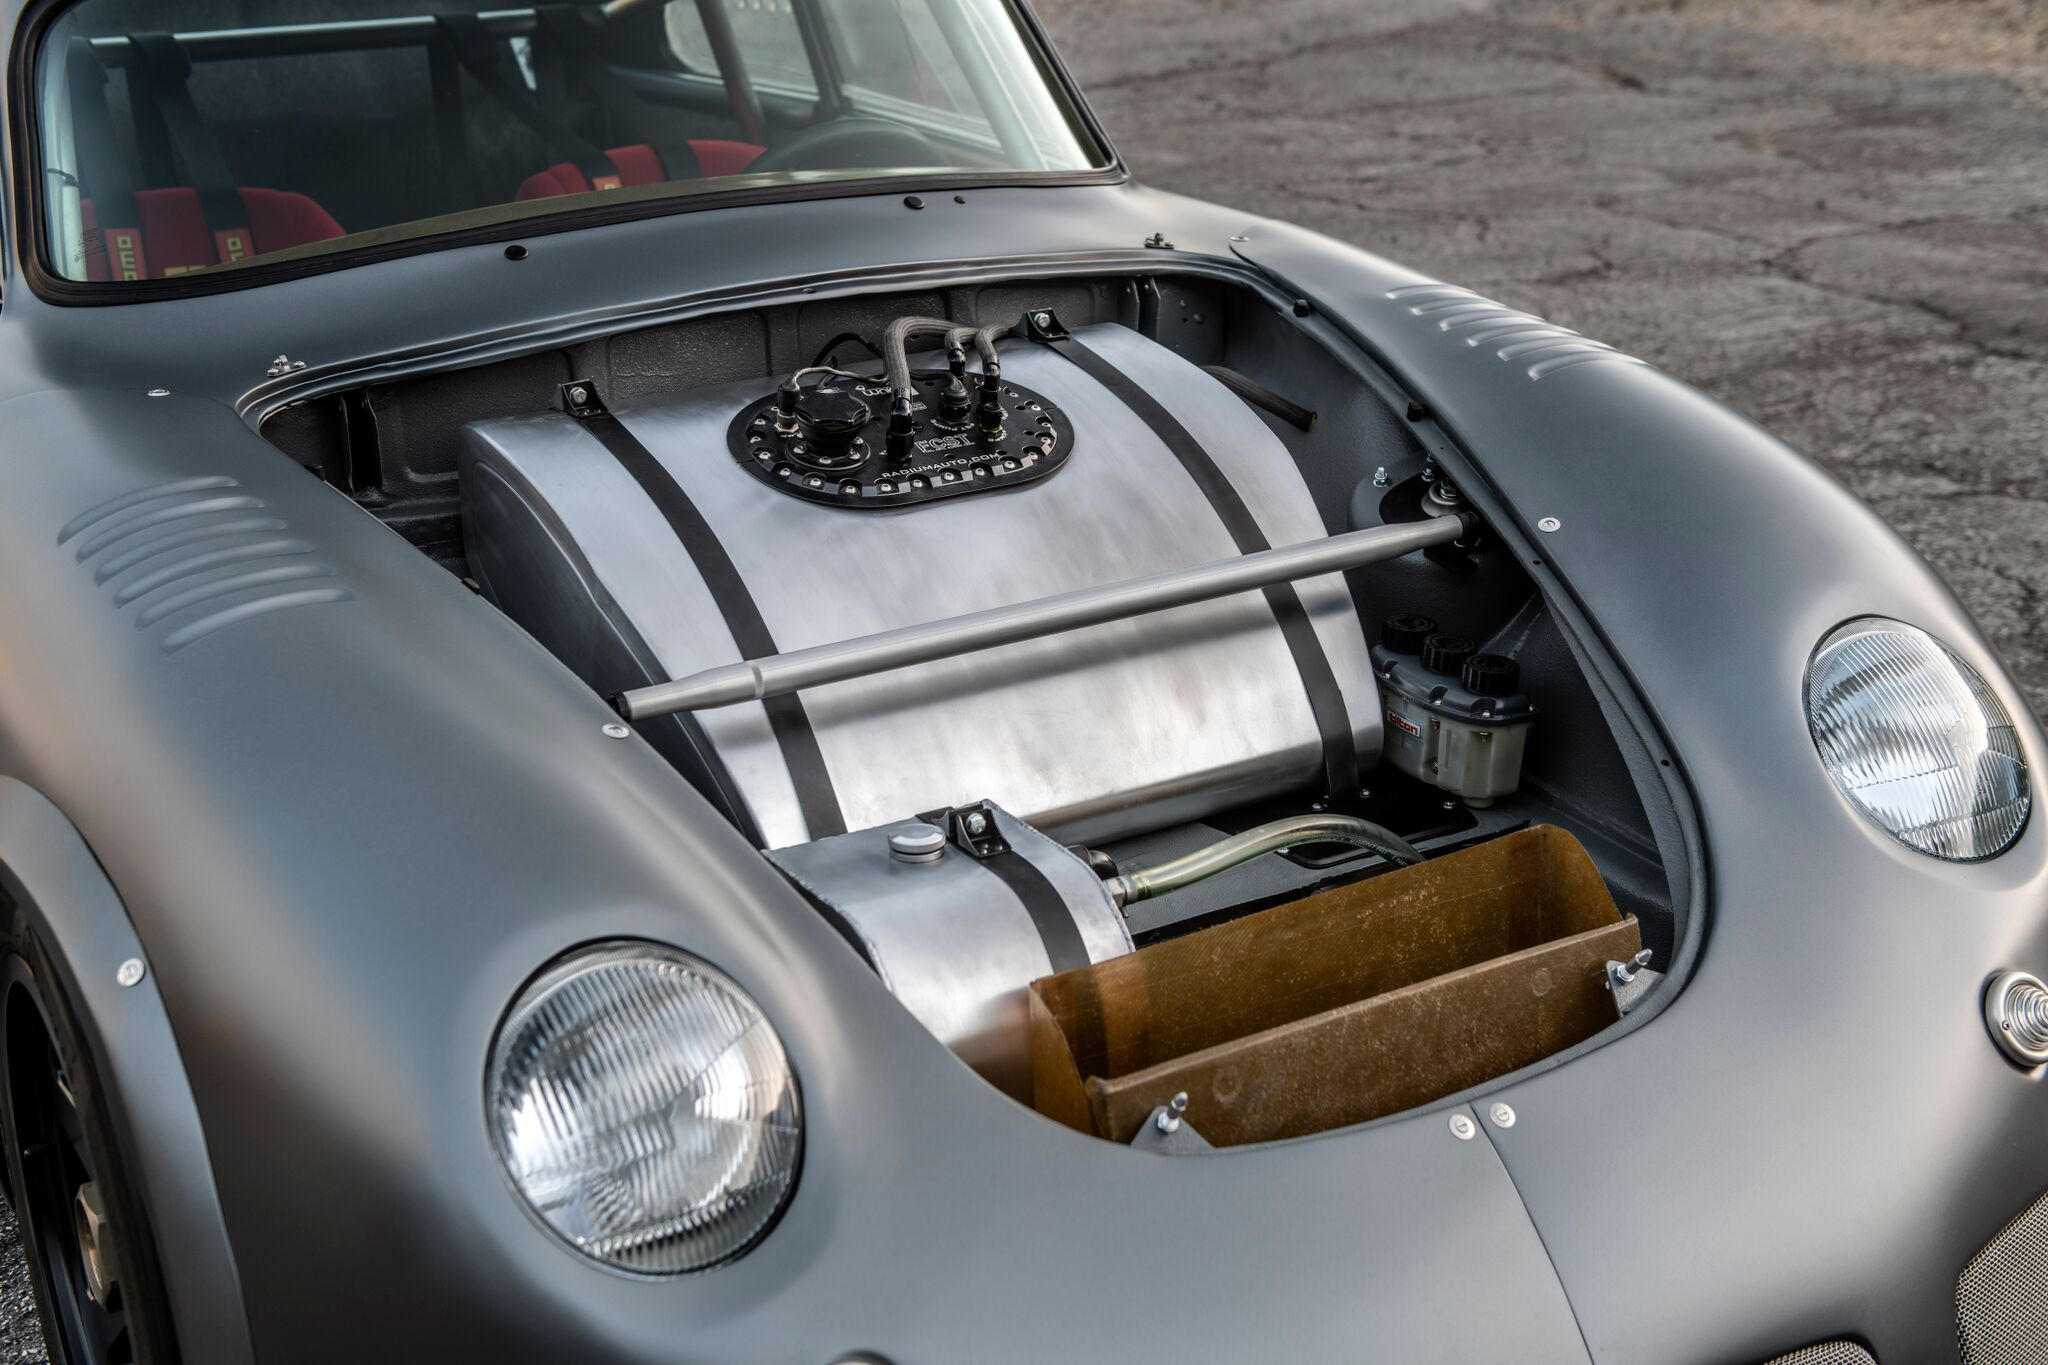 Porsche-356-RSR-Outlaw-by-Momo-and-Emory-motorsports-20